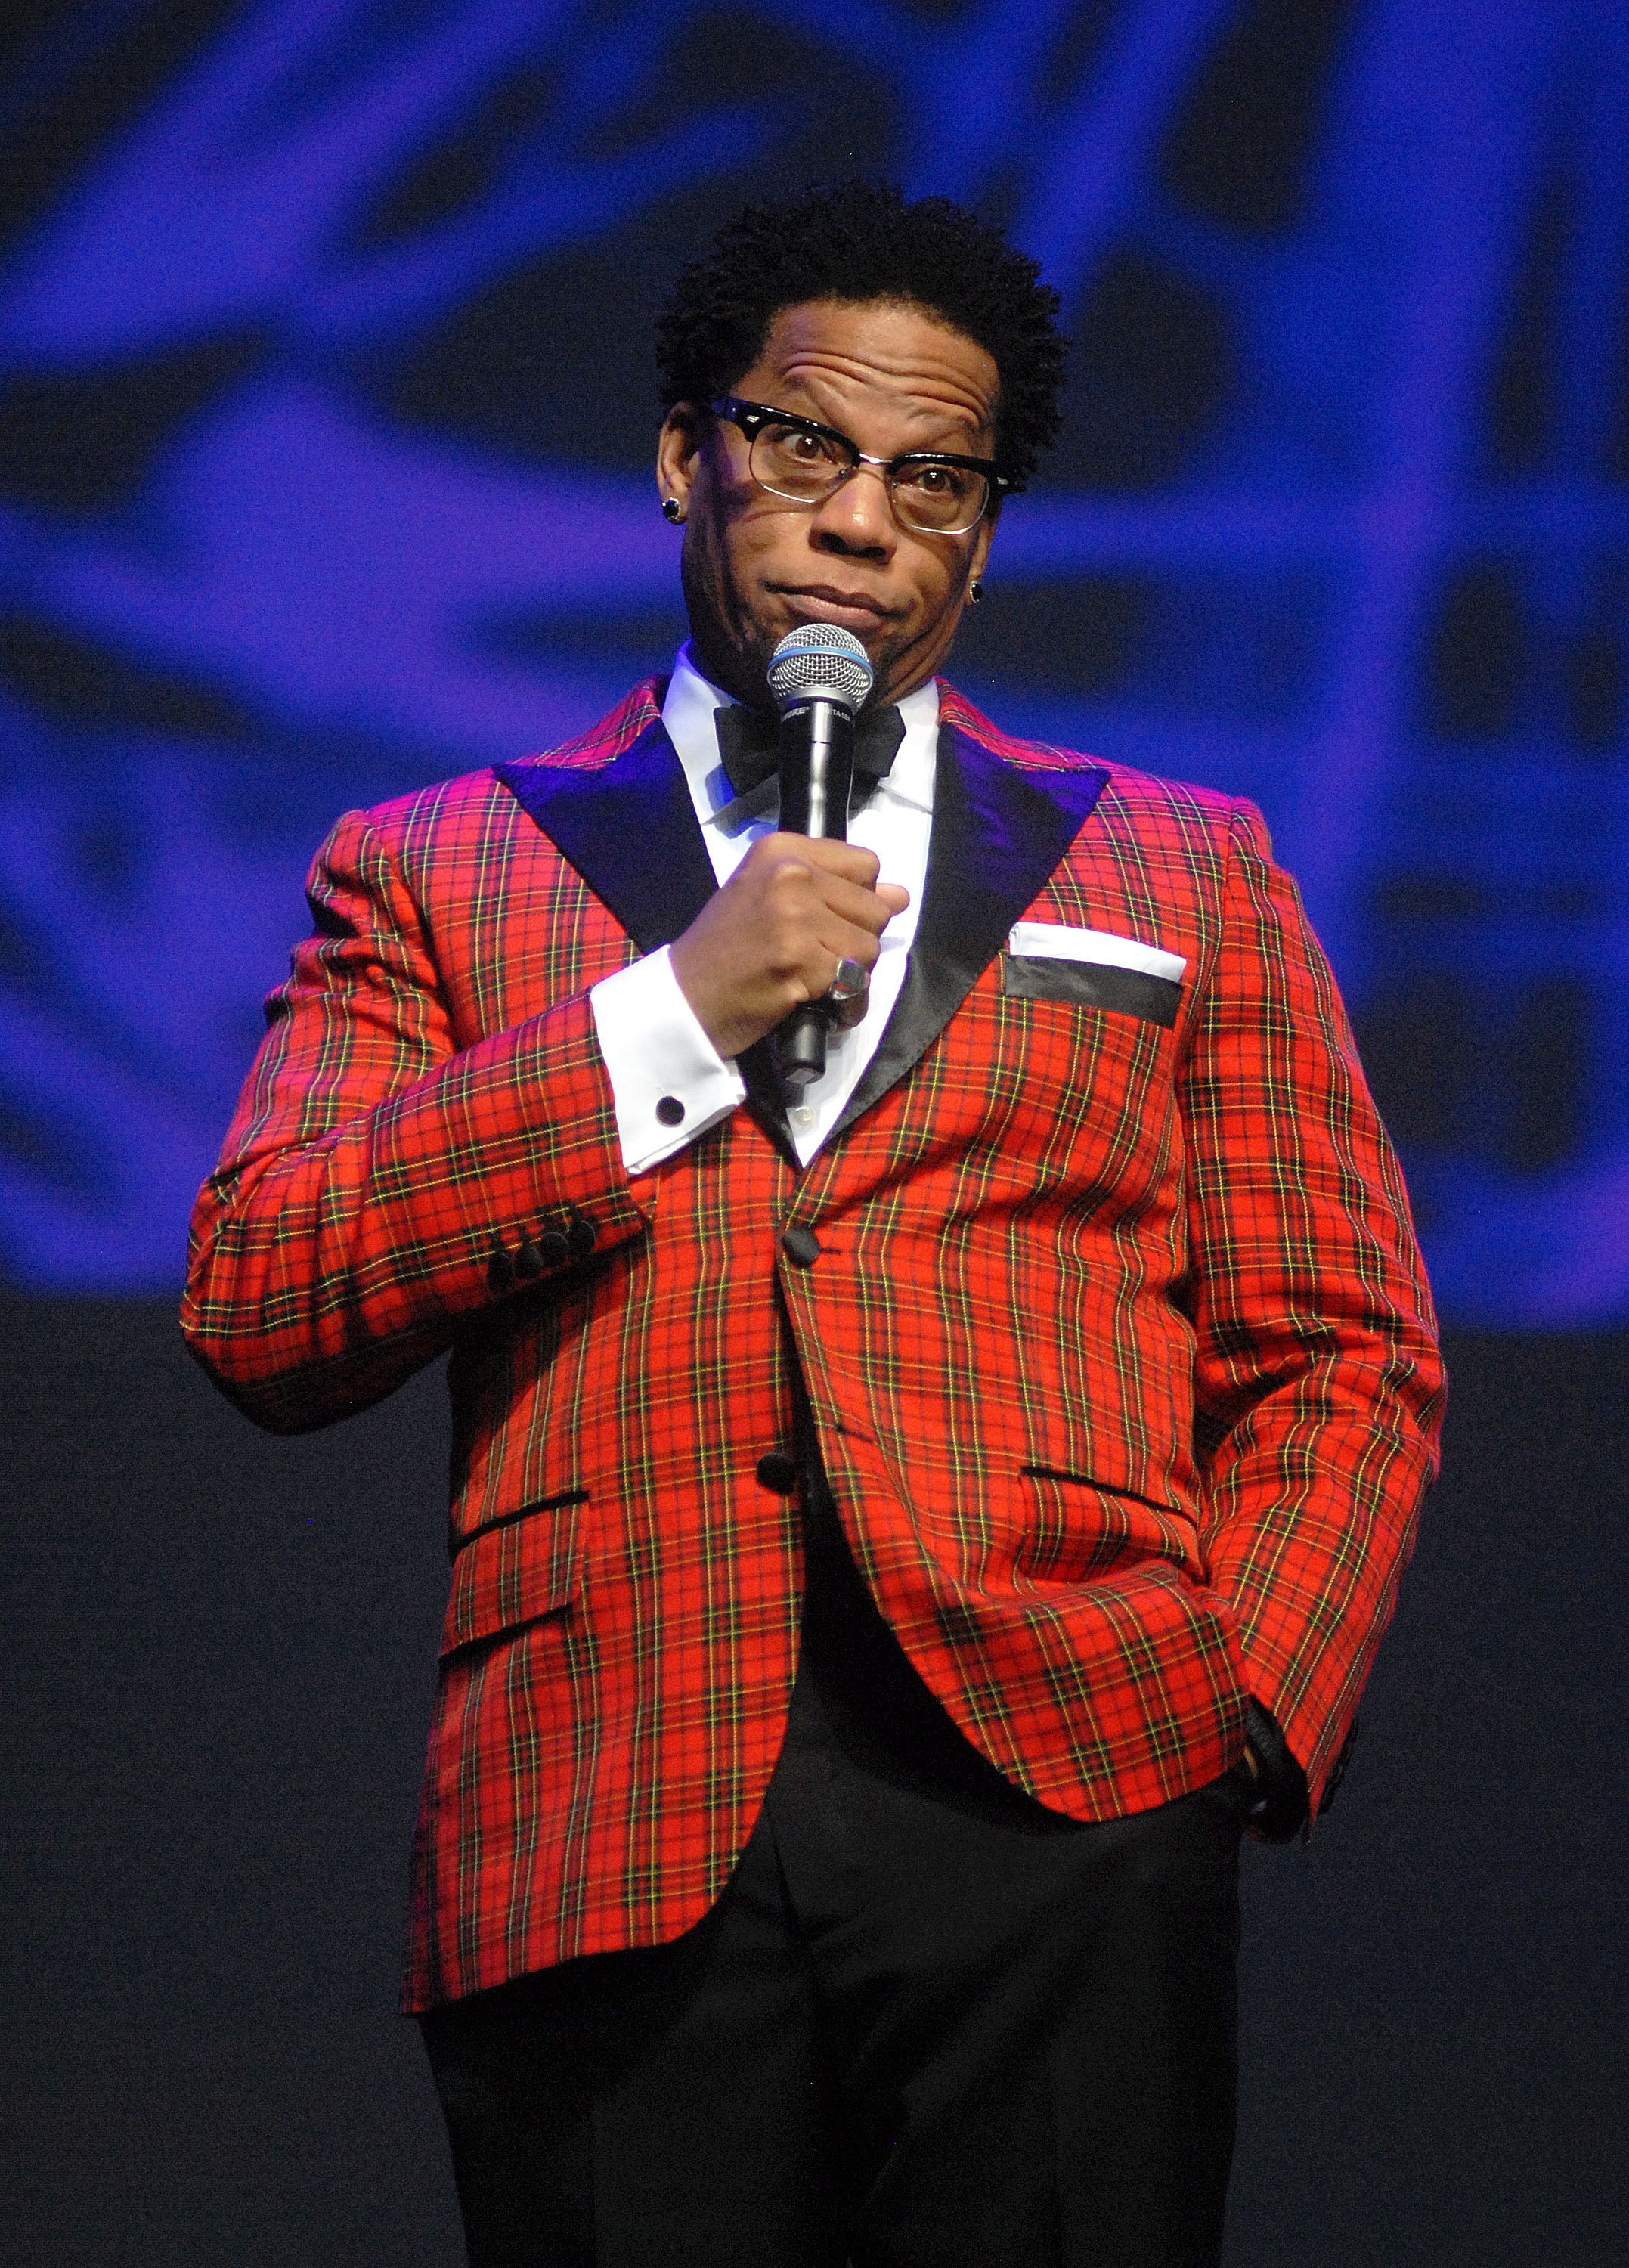 D.L. Hughley performs at MotorCity Casino's Sound Board Theater on January 23, 2014. | Photo: GettyImages/Global Images of Ukraine